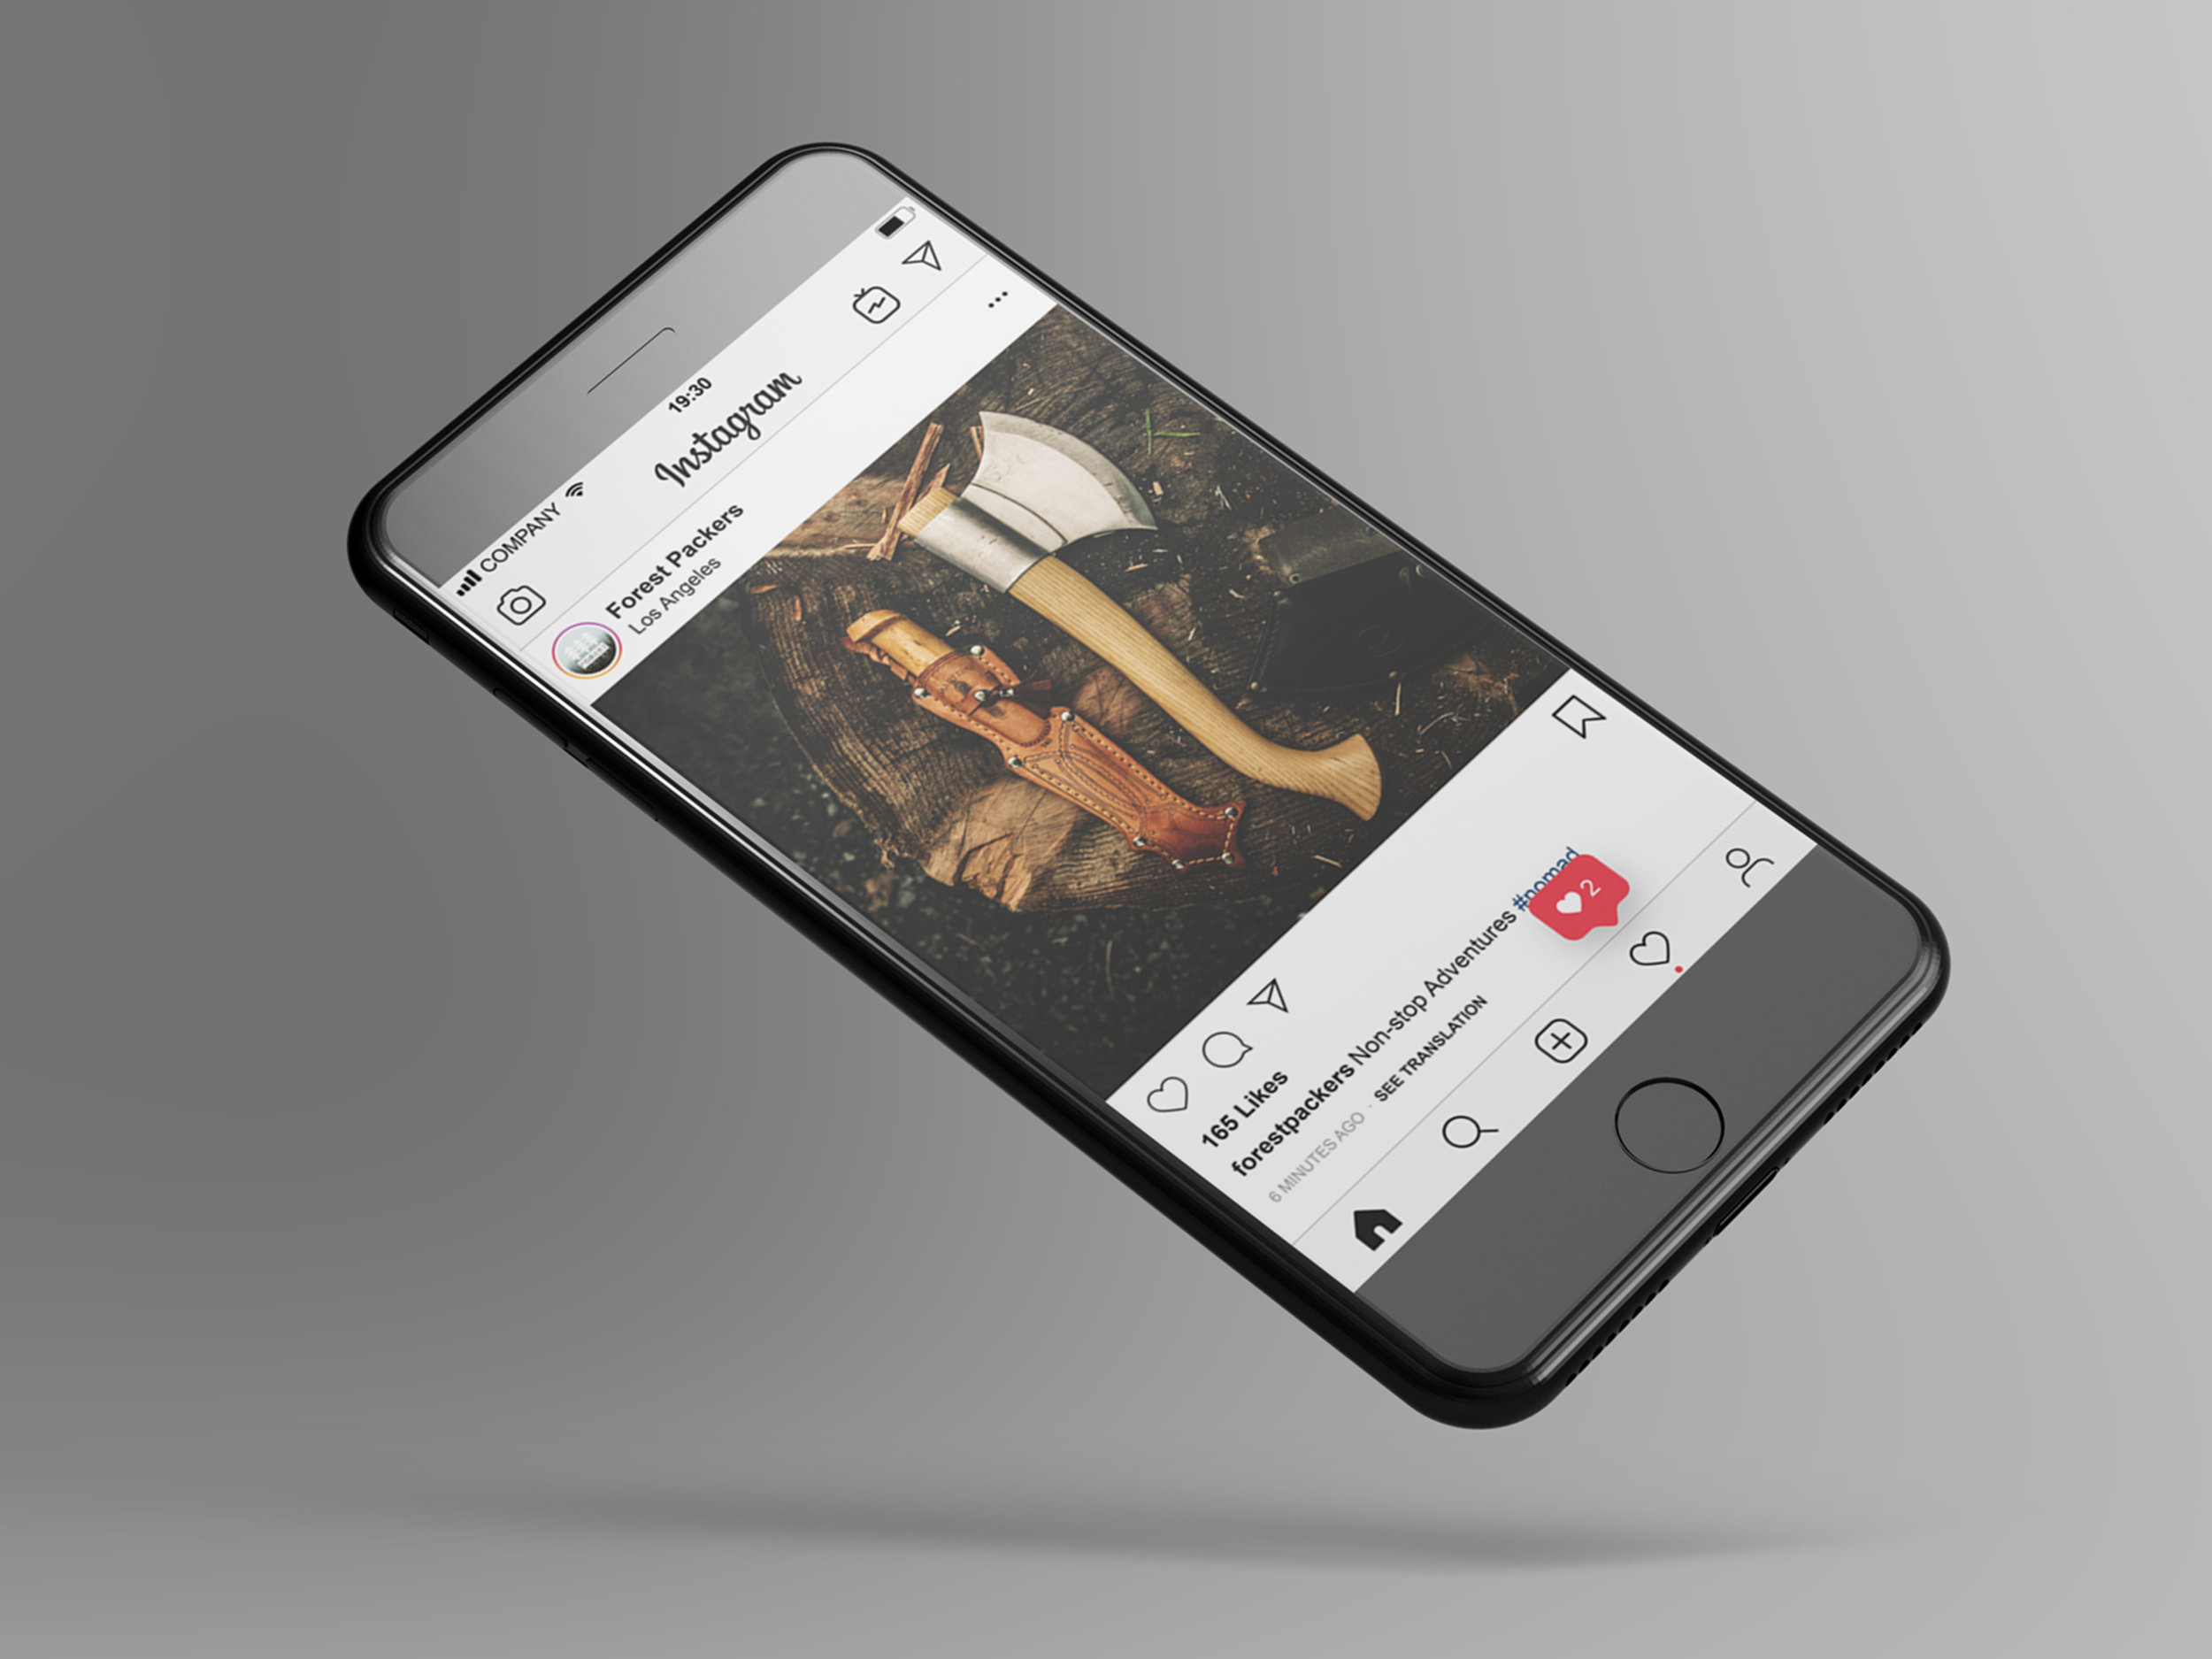 Tilted-iPhone-8-MockUp-2.jpg